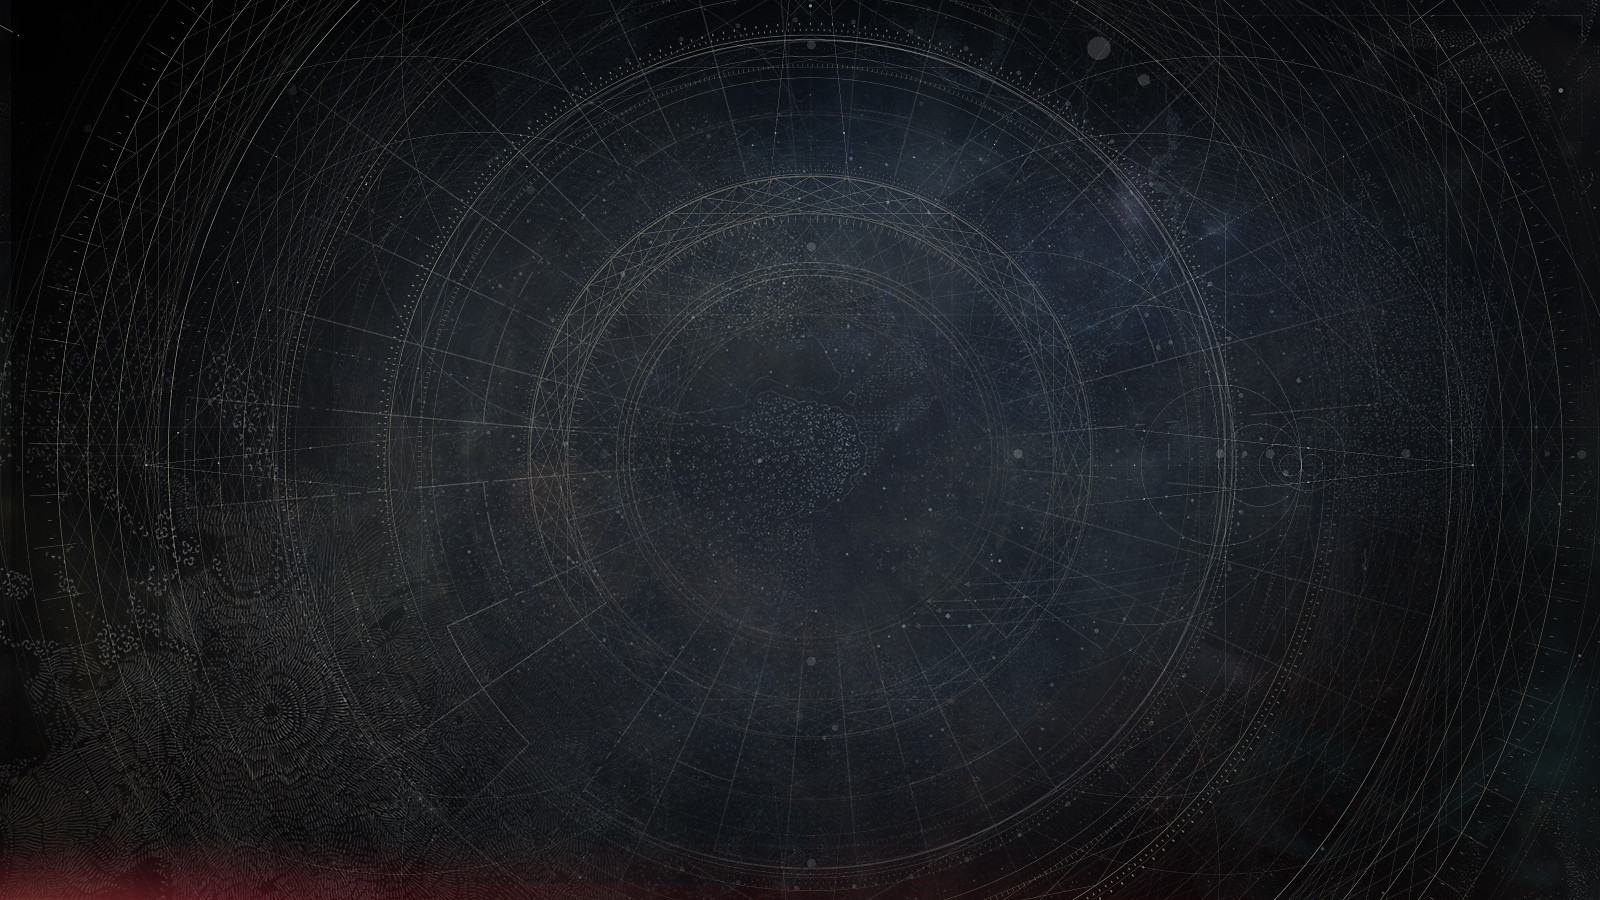 Destiny 2 Background 103 images in Collection Page 1 1600x900